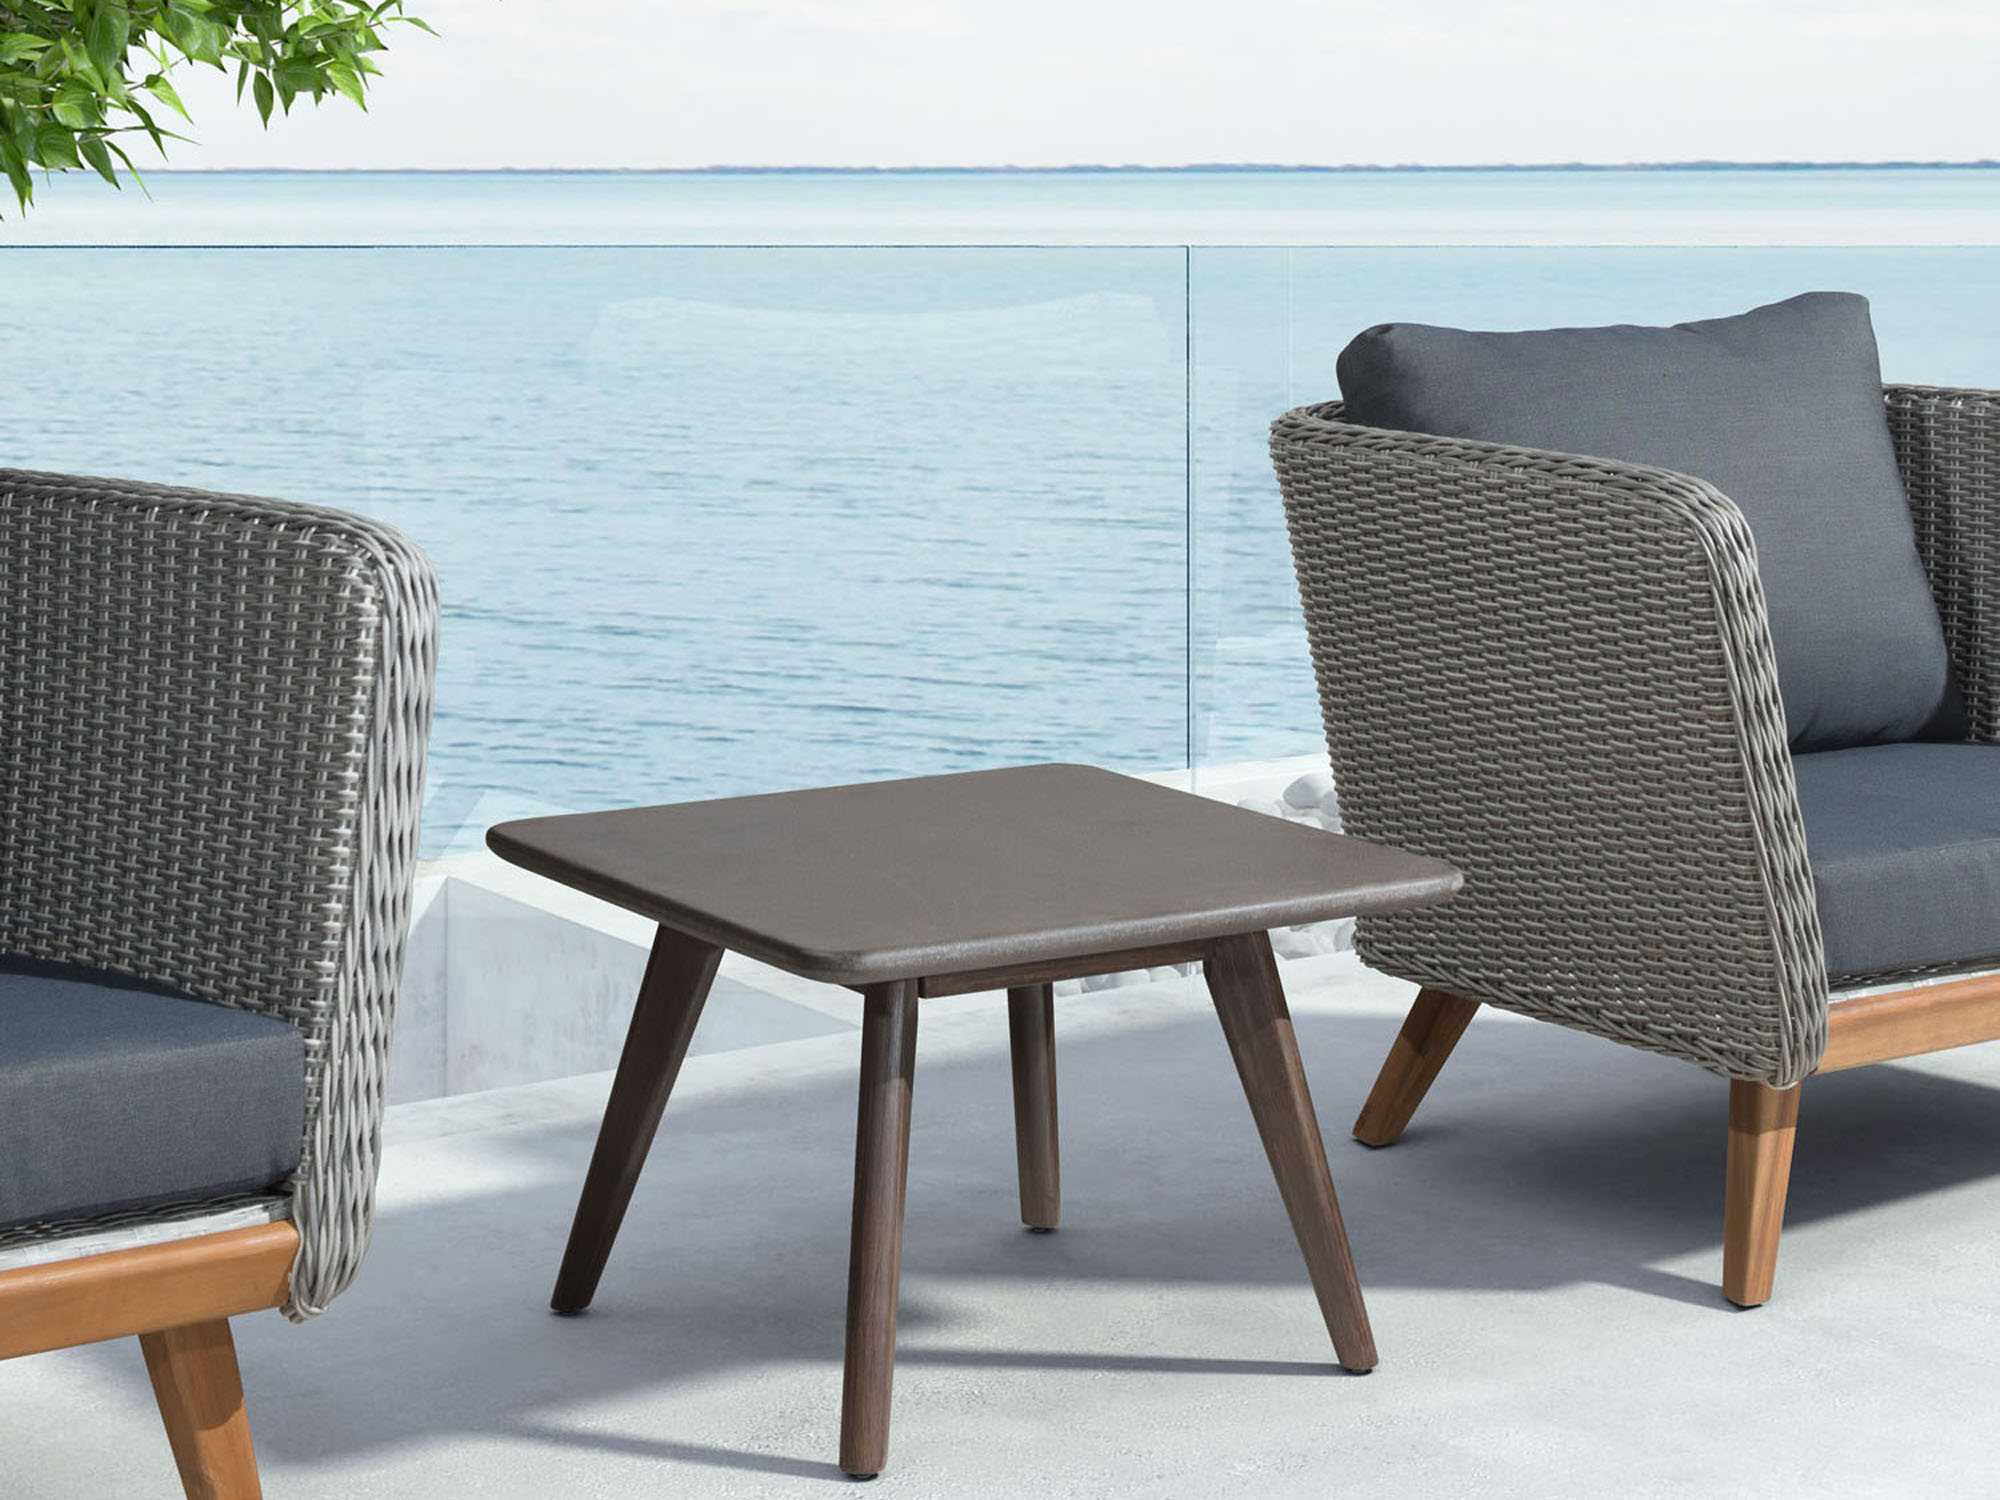 Zuo Outdoor Daughter Acacia Wood 23 60 Square Poly Cement Top